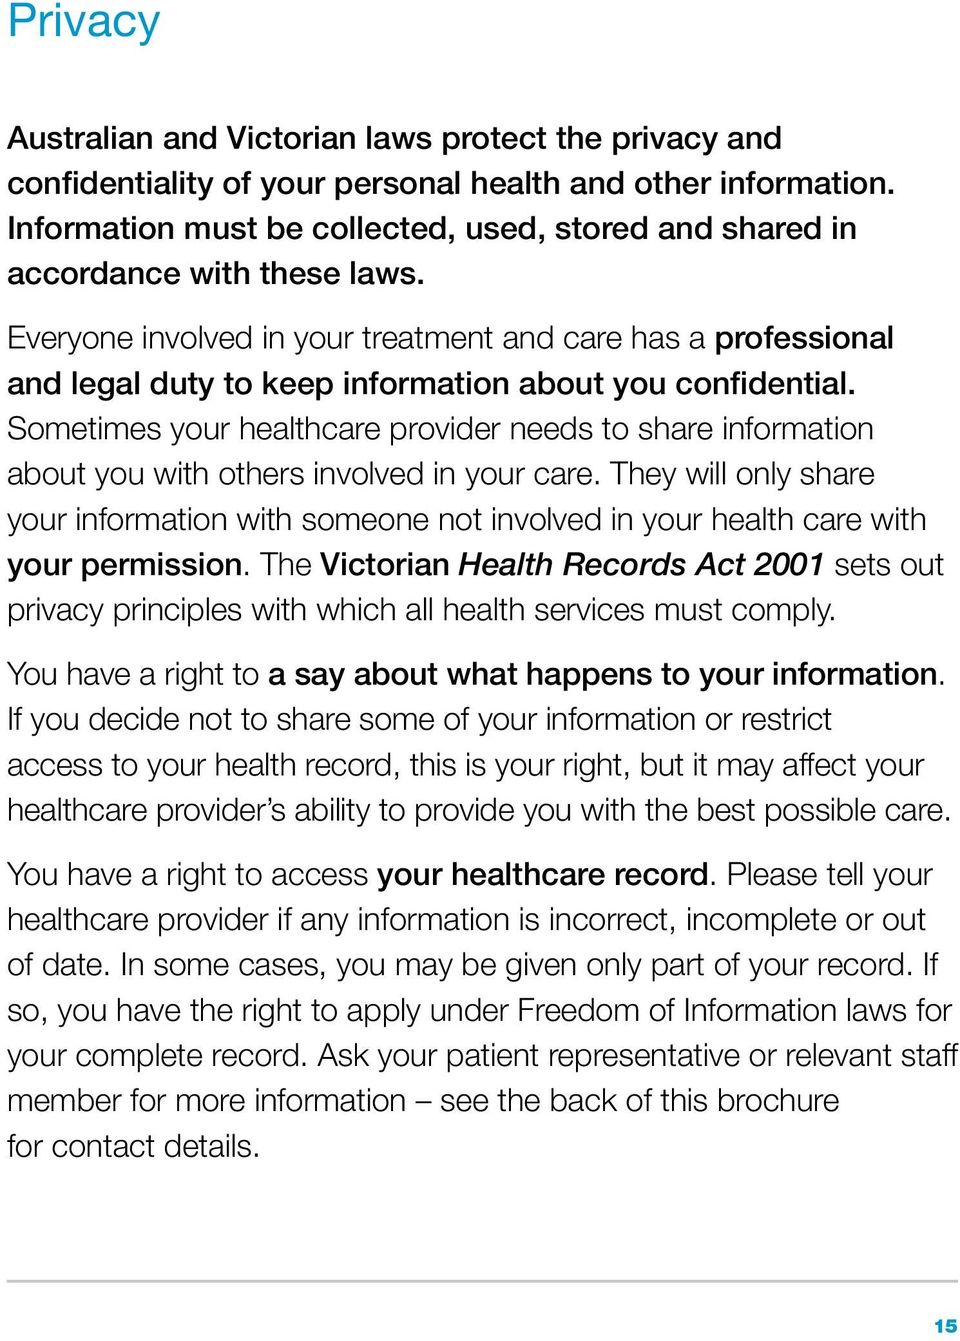 Everyone involved in your treatment and care has a professional and legal duty to keep information about you confidential.